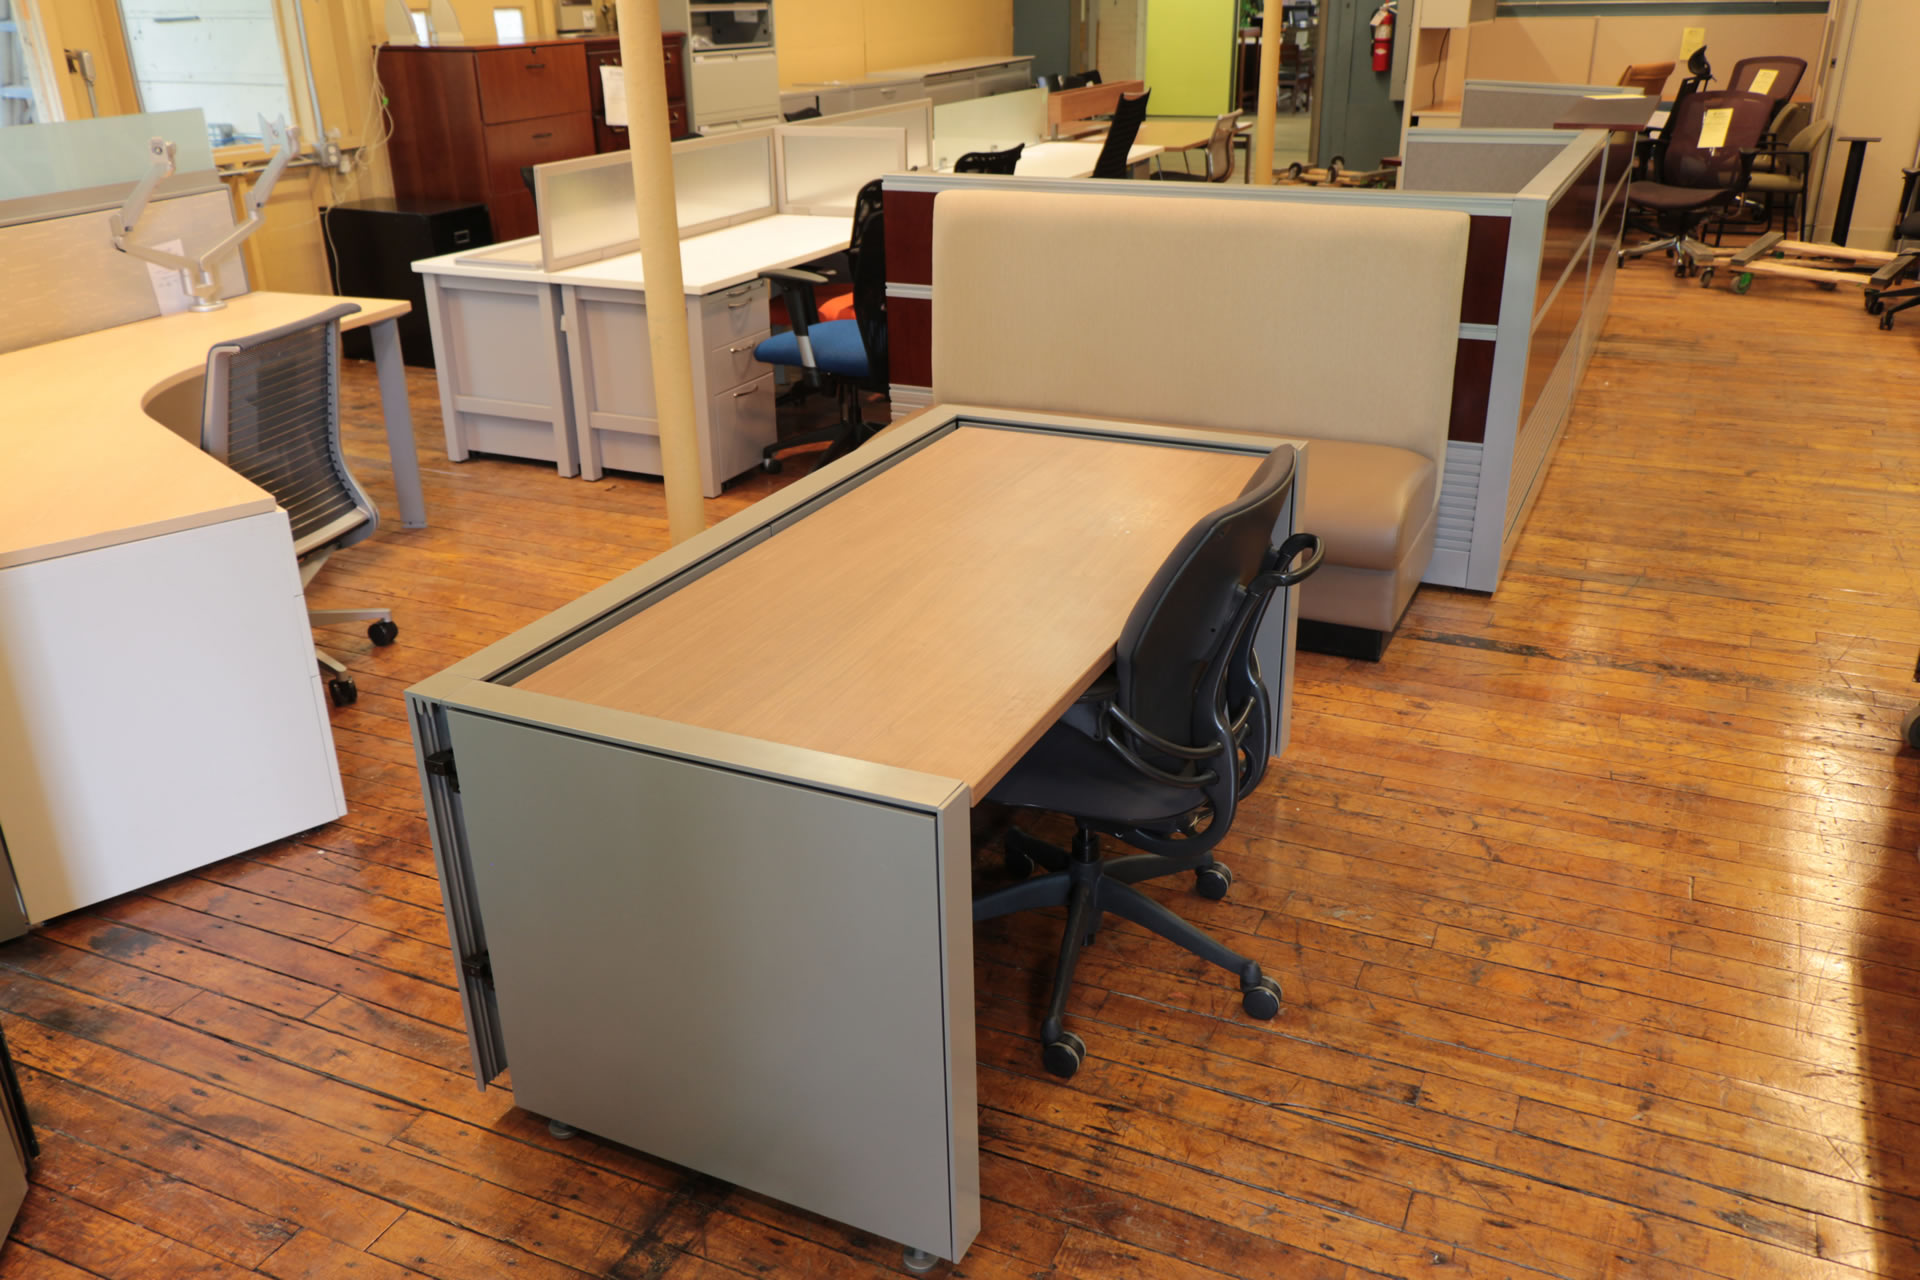 peartreeofficefurniture_peartreeofficefurniture_peartreeofficefurniture_img_8443.jpg